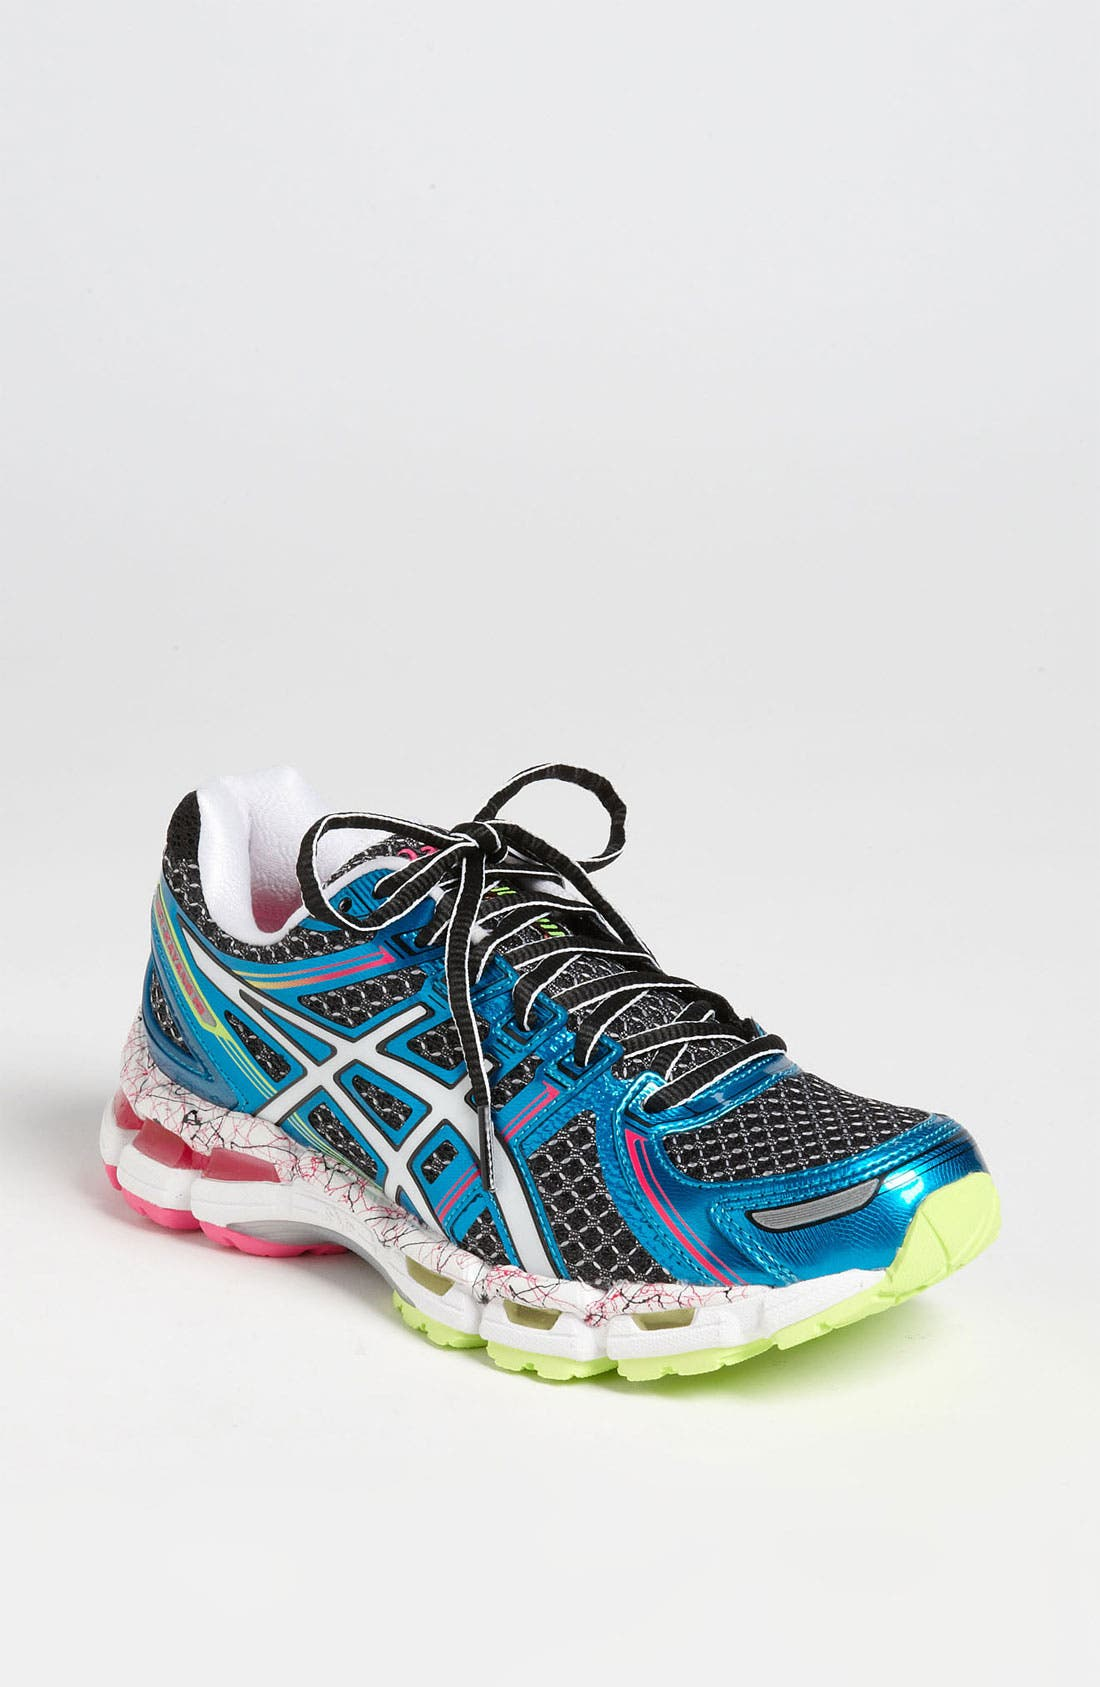 Alternate Image 1 Selected - ASICS® 'GEL-Kayano® 19' Running Shoe (Women)